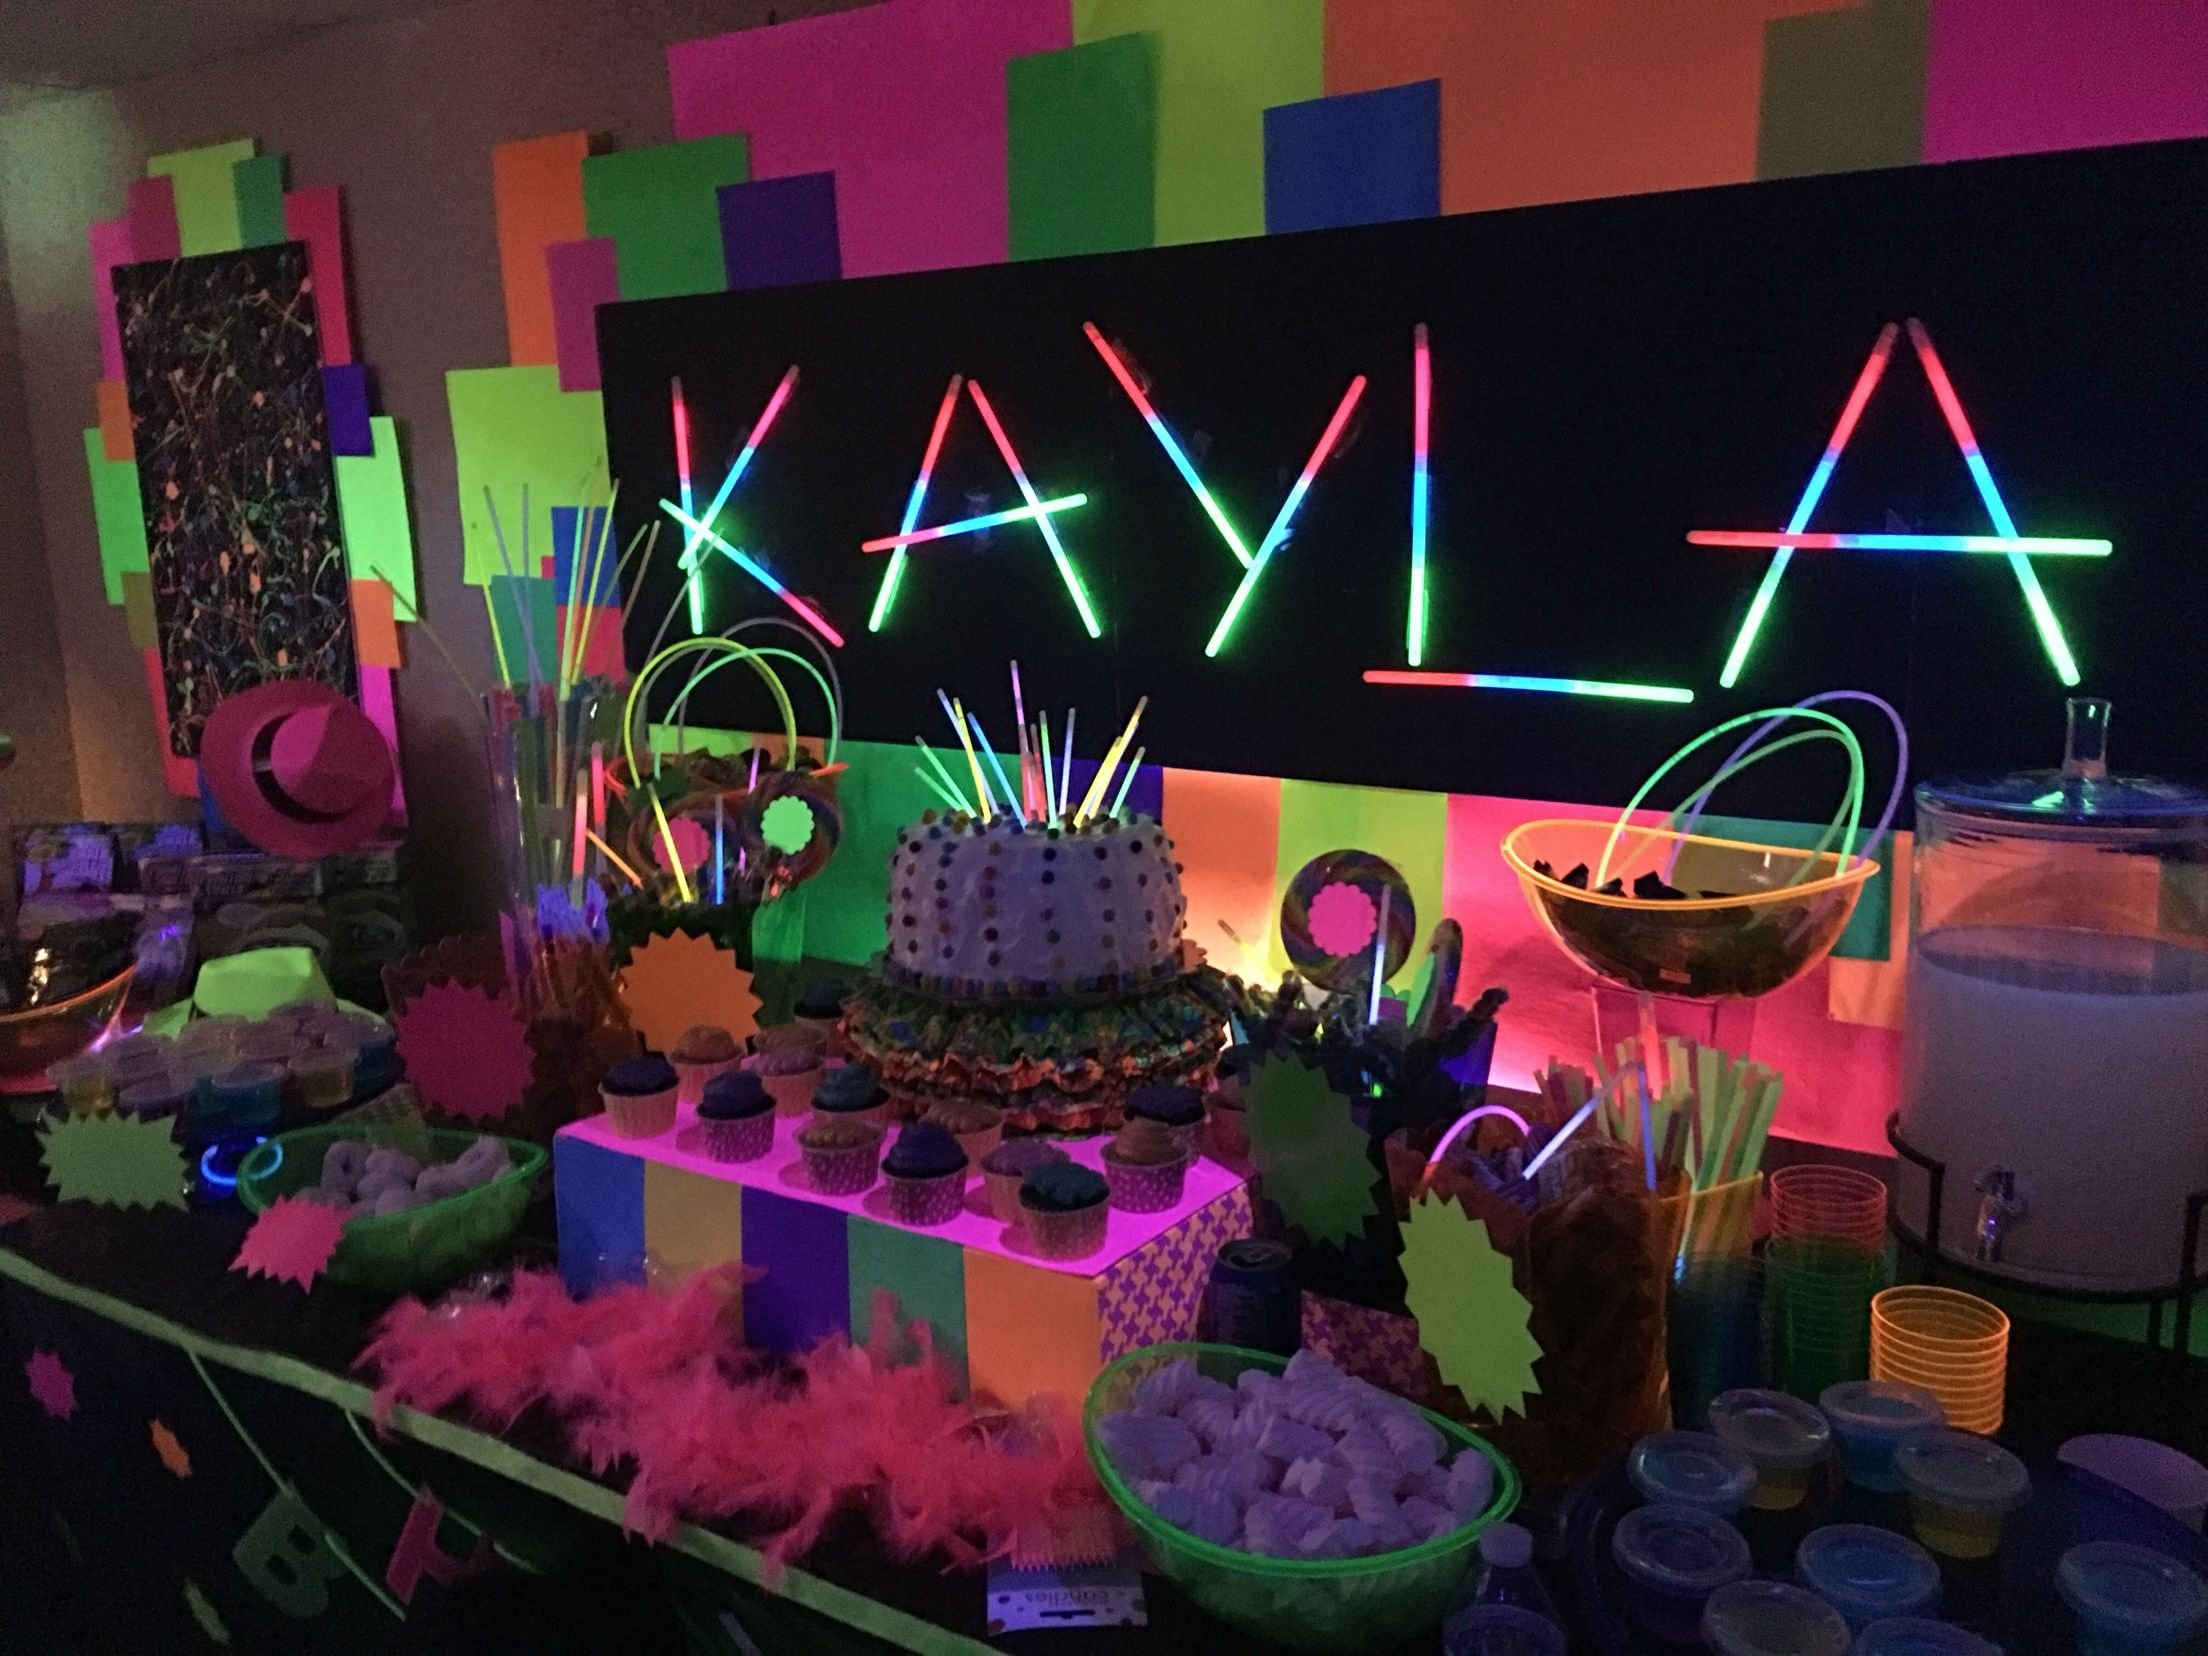 created this dessert/candy buffet and decor for my daughter kayla's